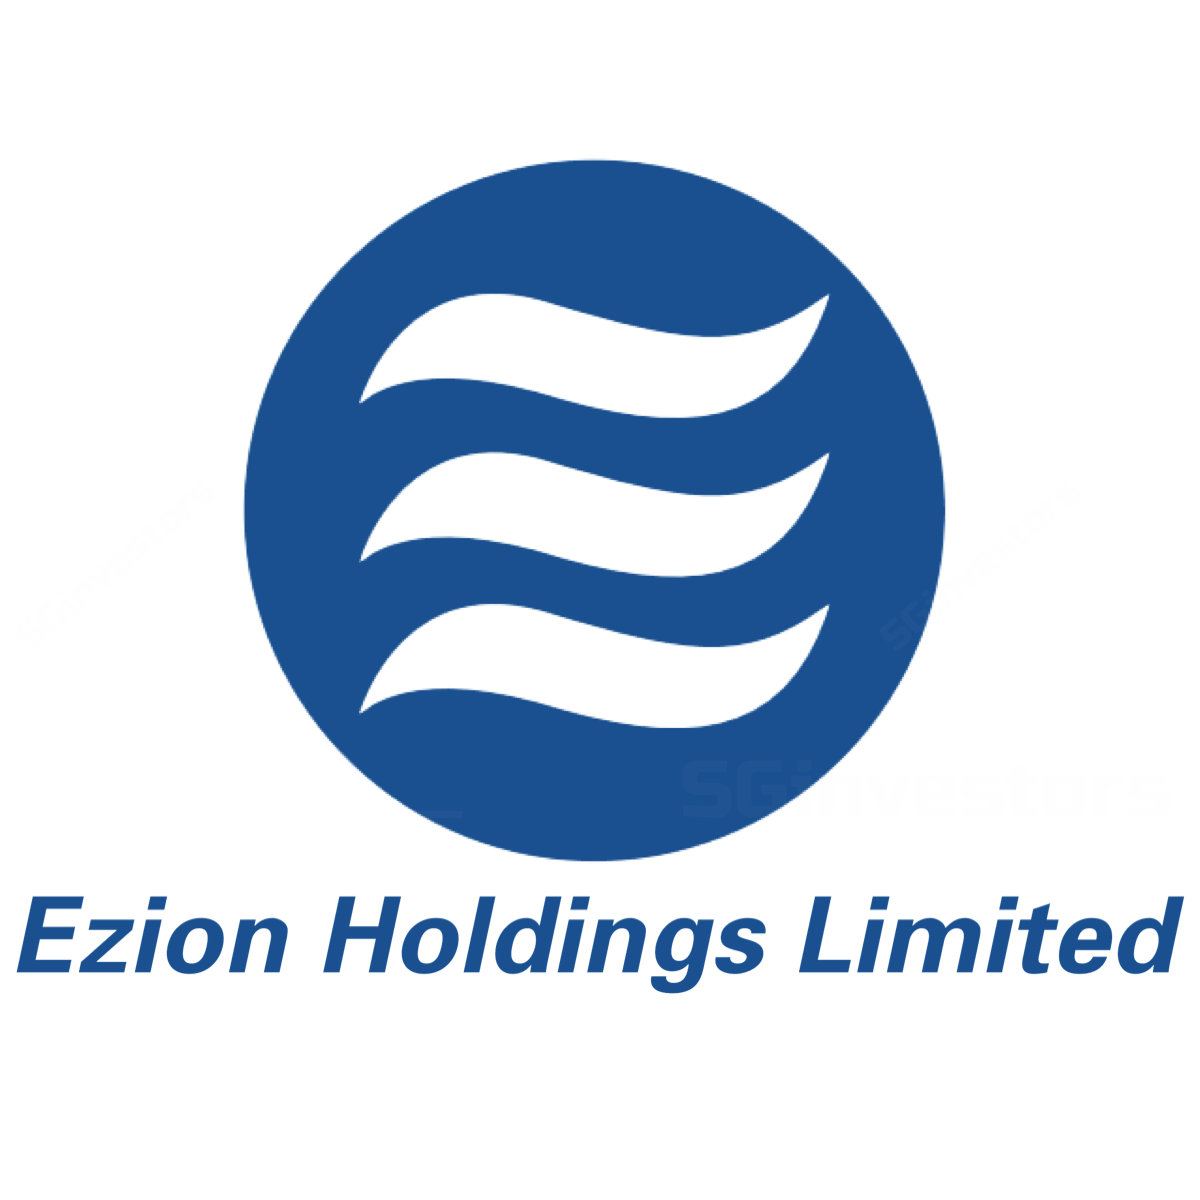 Ezion Holdings (EZI SP) - UOB Kay Hian 2018-04-17: Delayed Resurrection